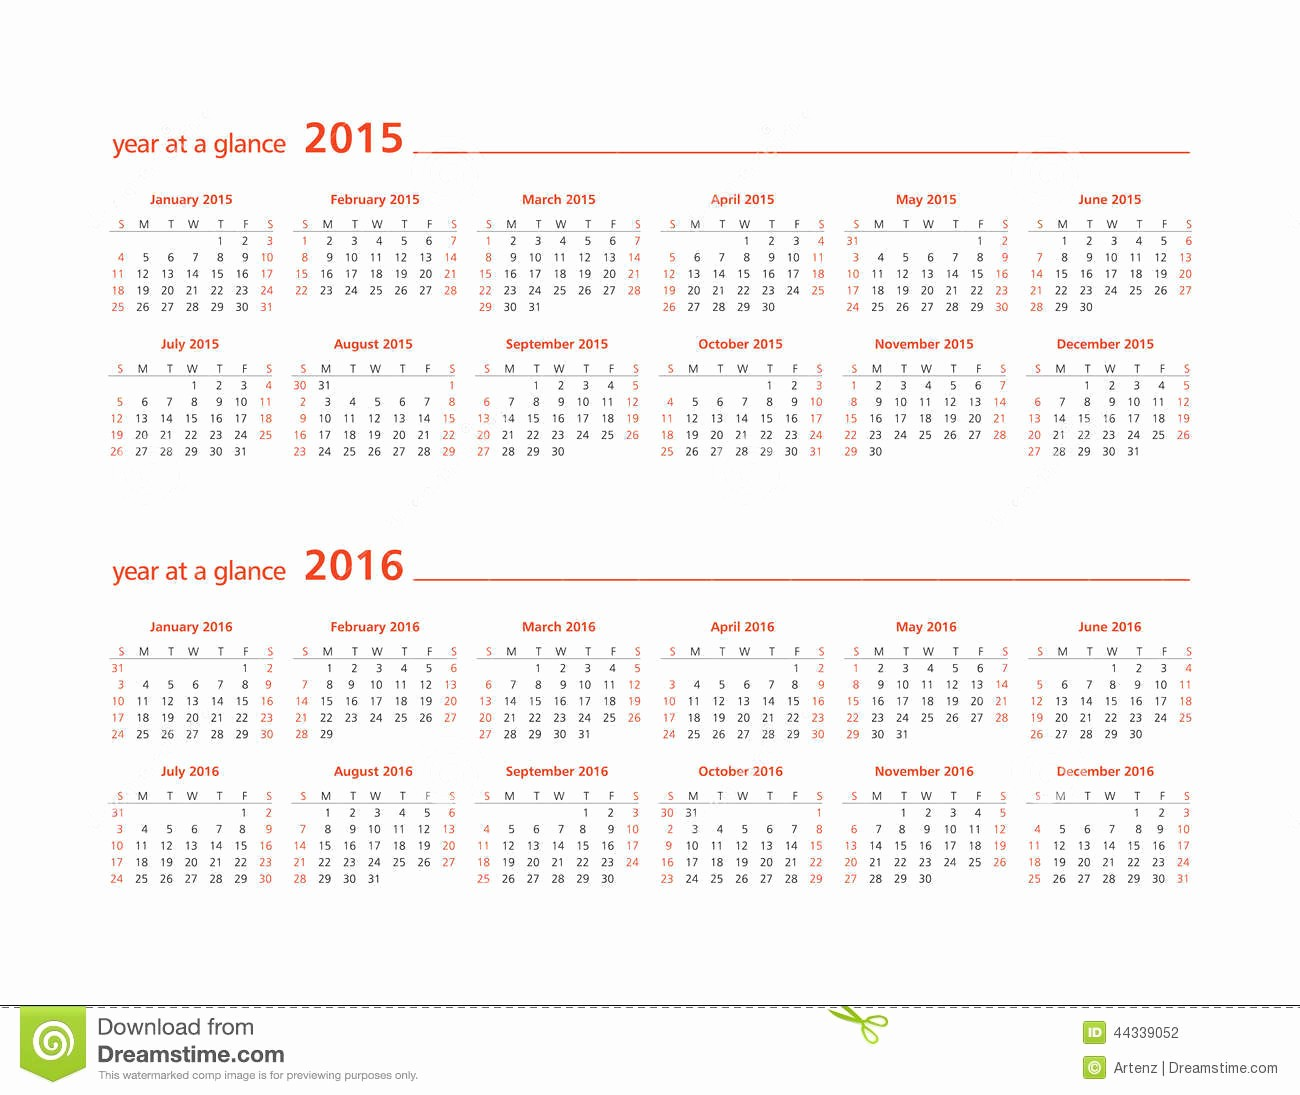 A Year at A Glance Unique Year at A Glance Wall Calendar 2015